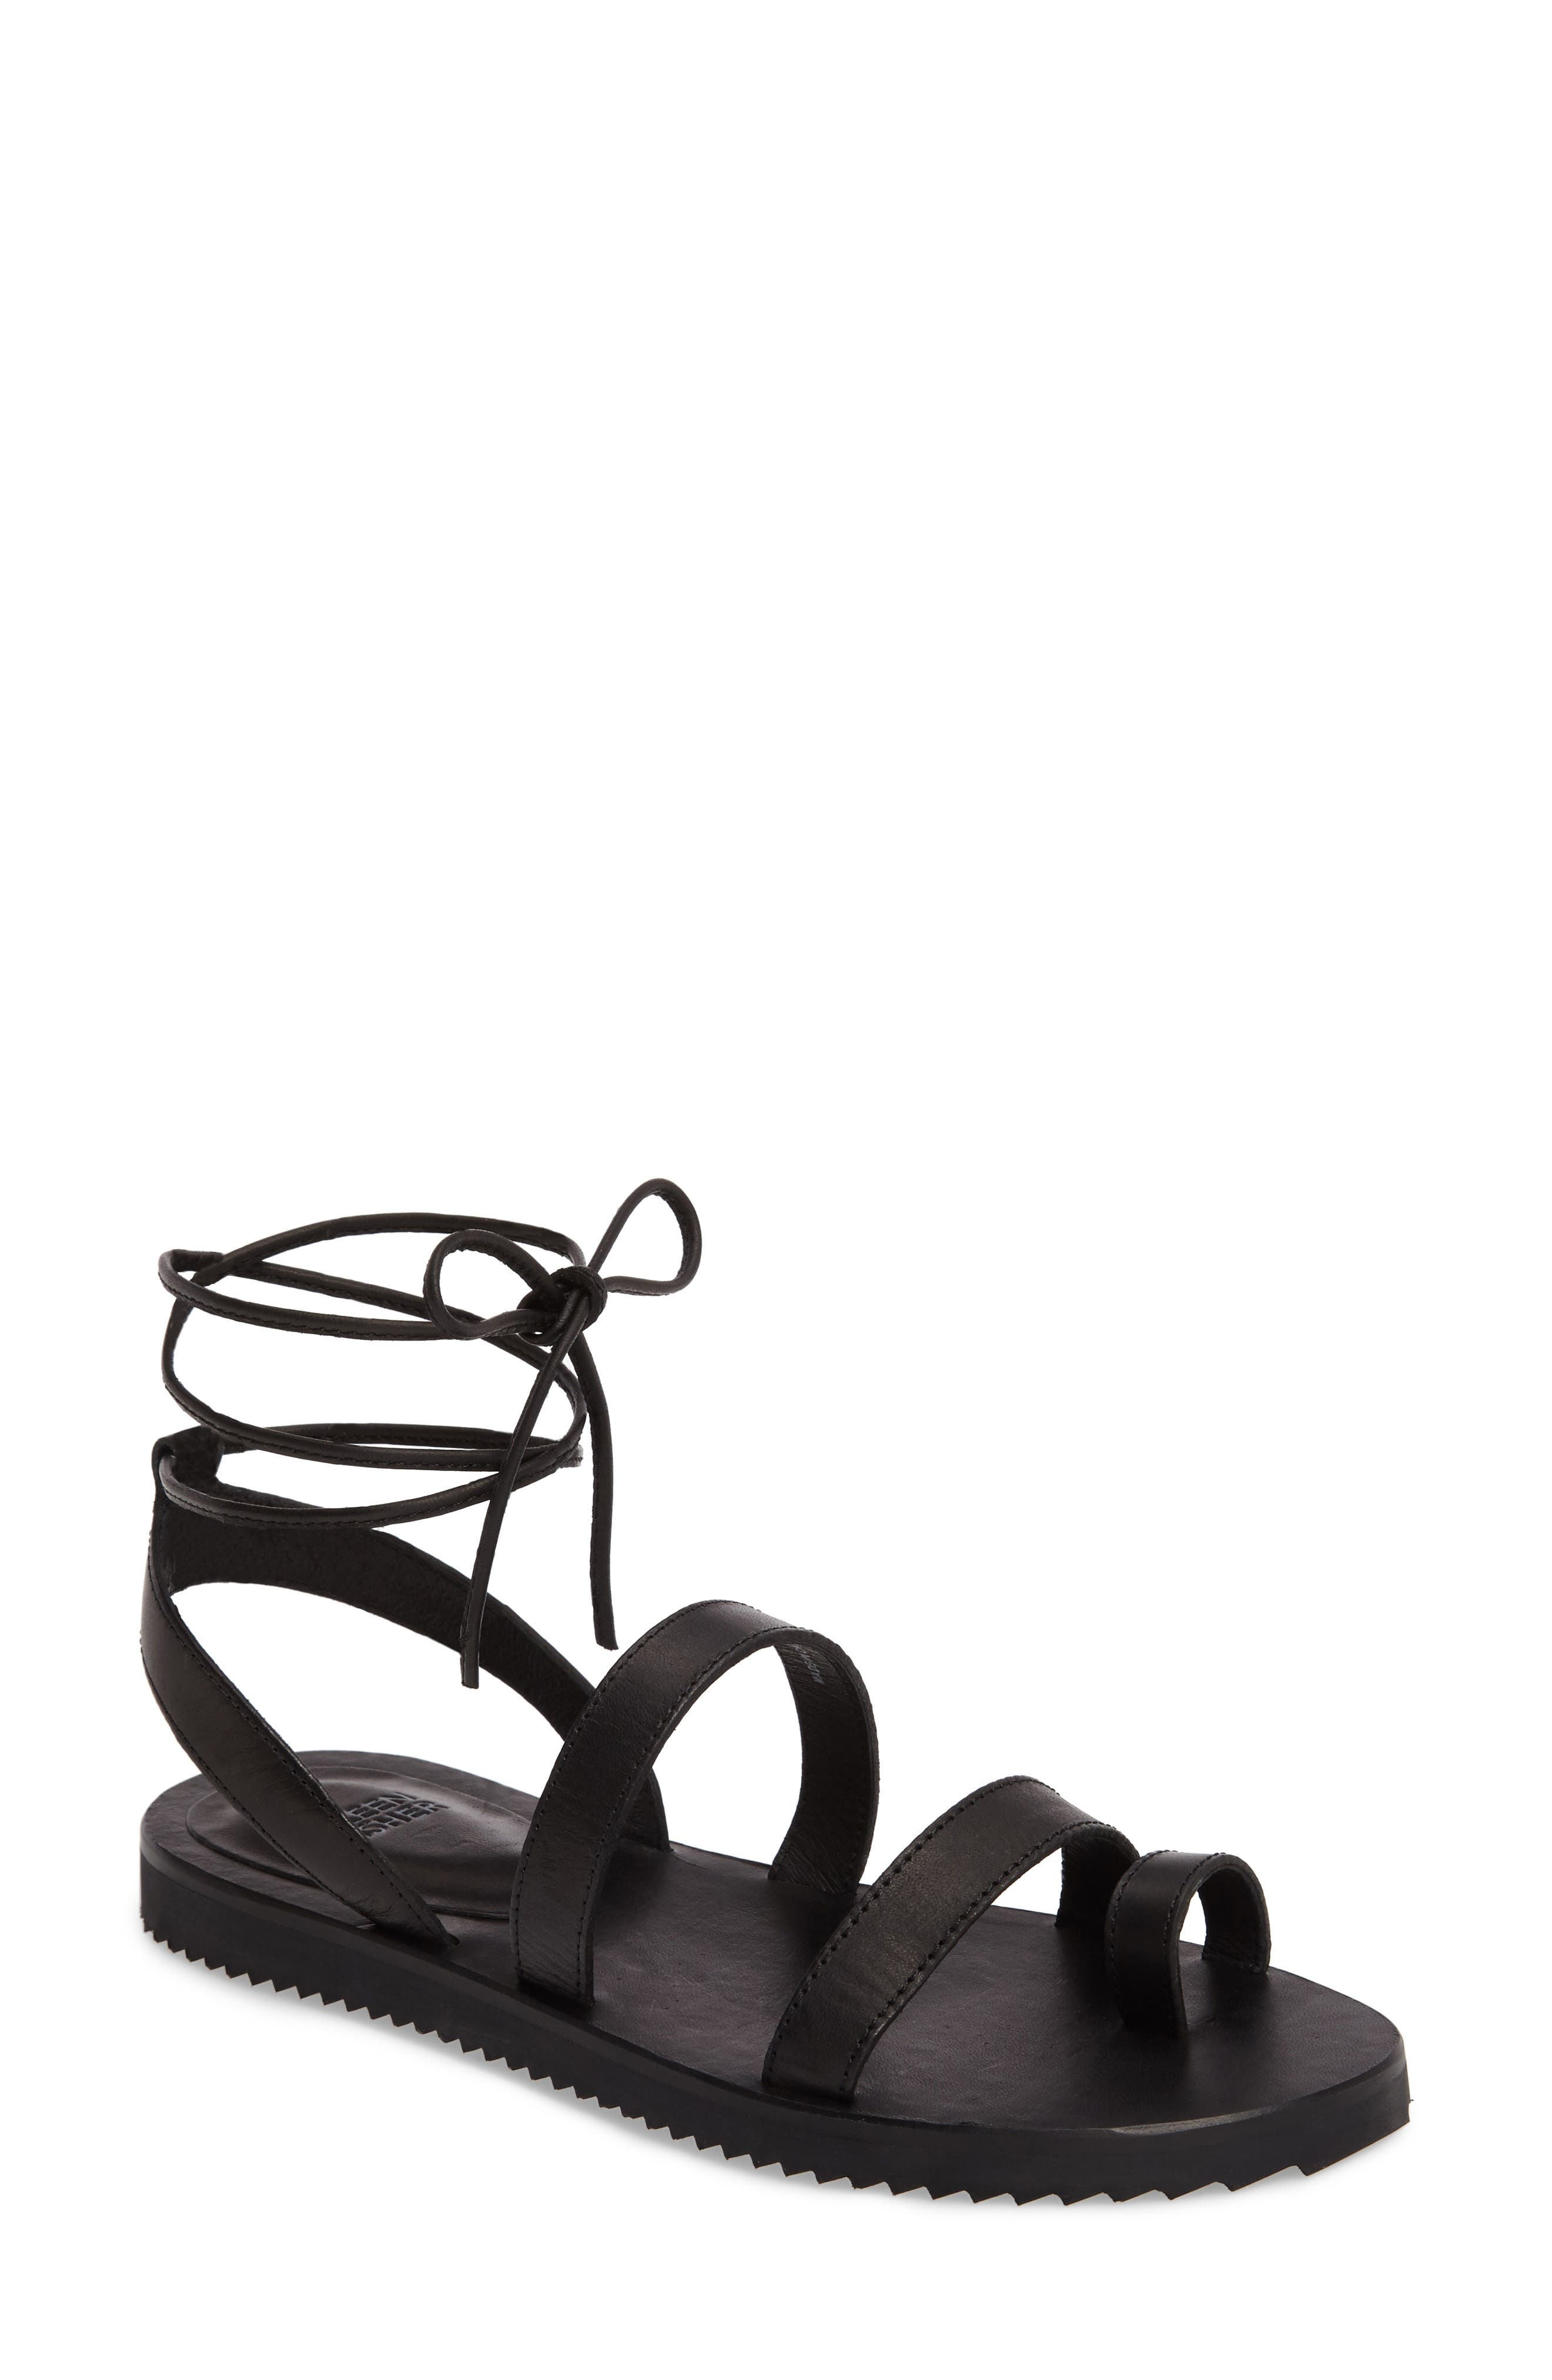 Main Image - Eileen Fisher Wales Lace-Up Sandal (Women)